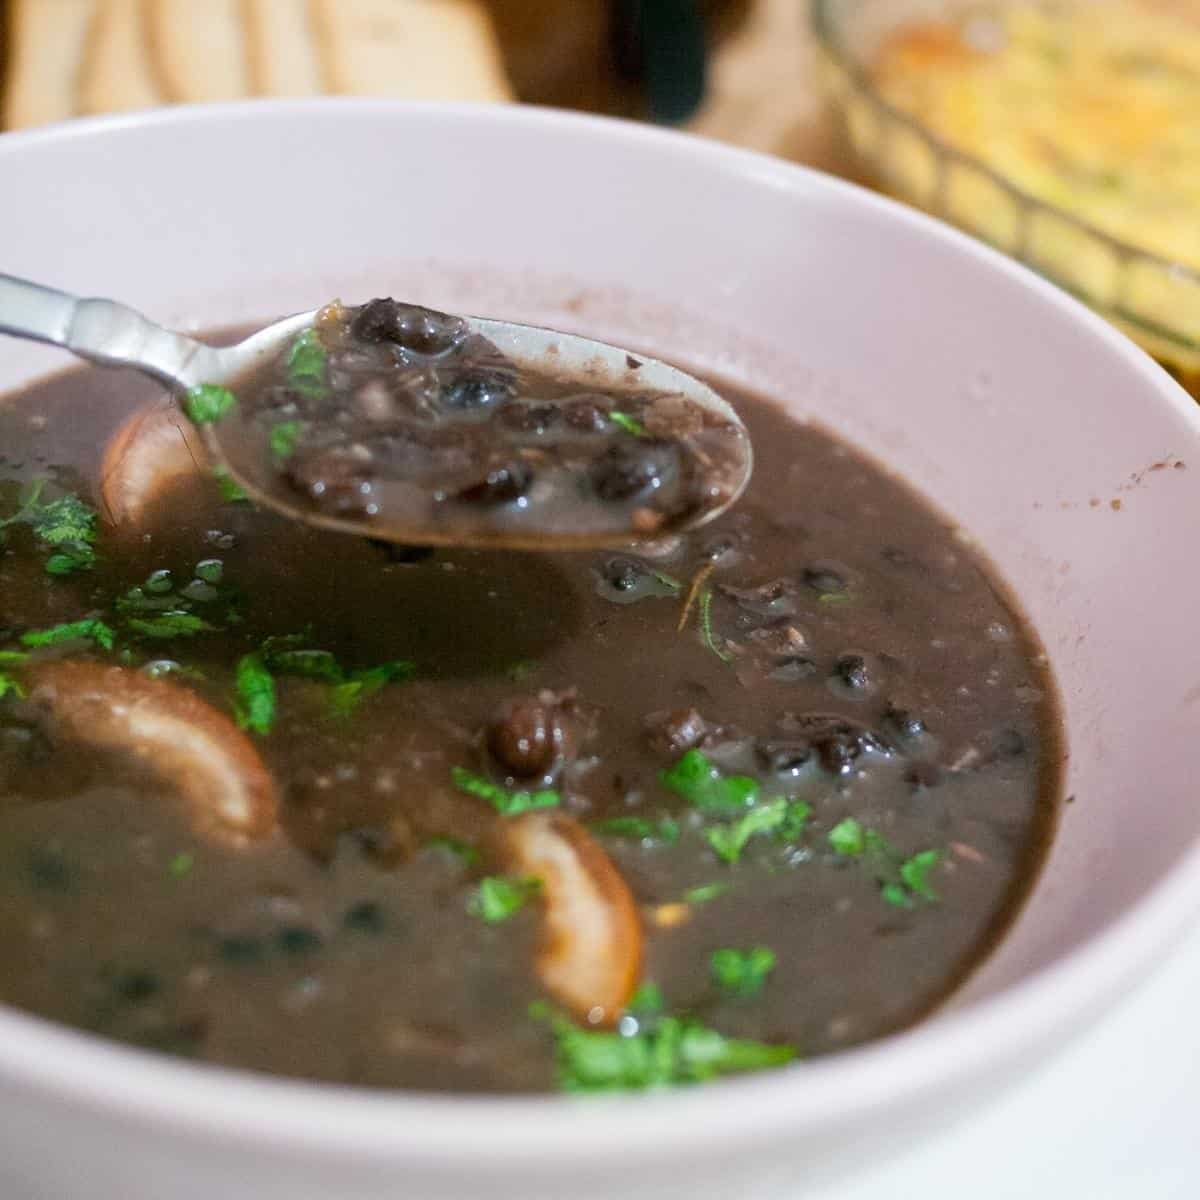 Black bean soup in a bowl with spoon